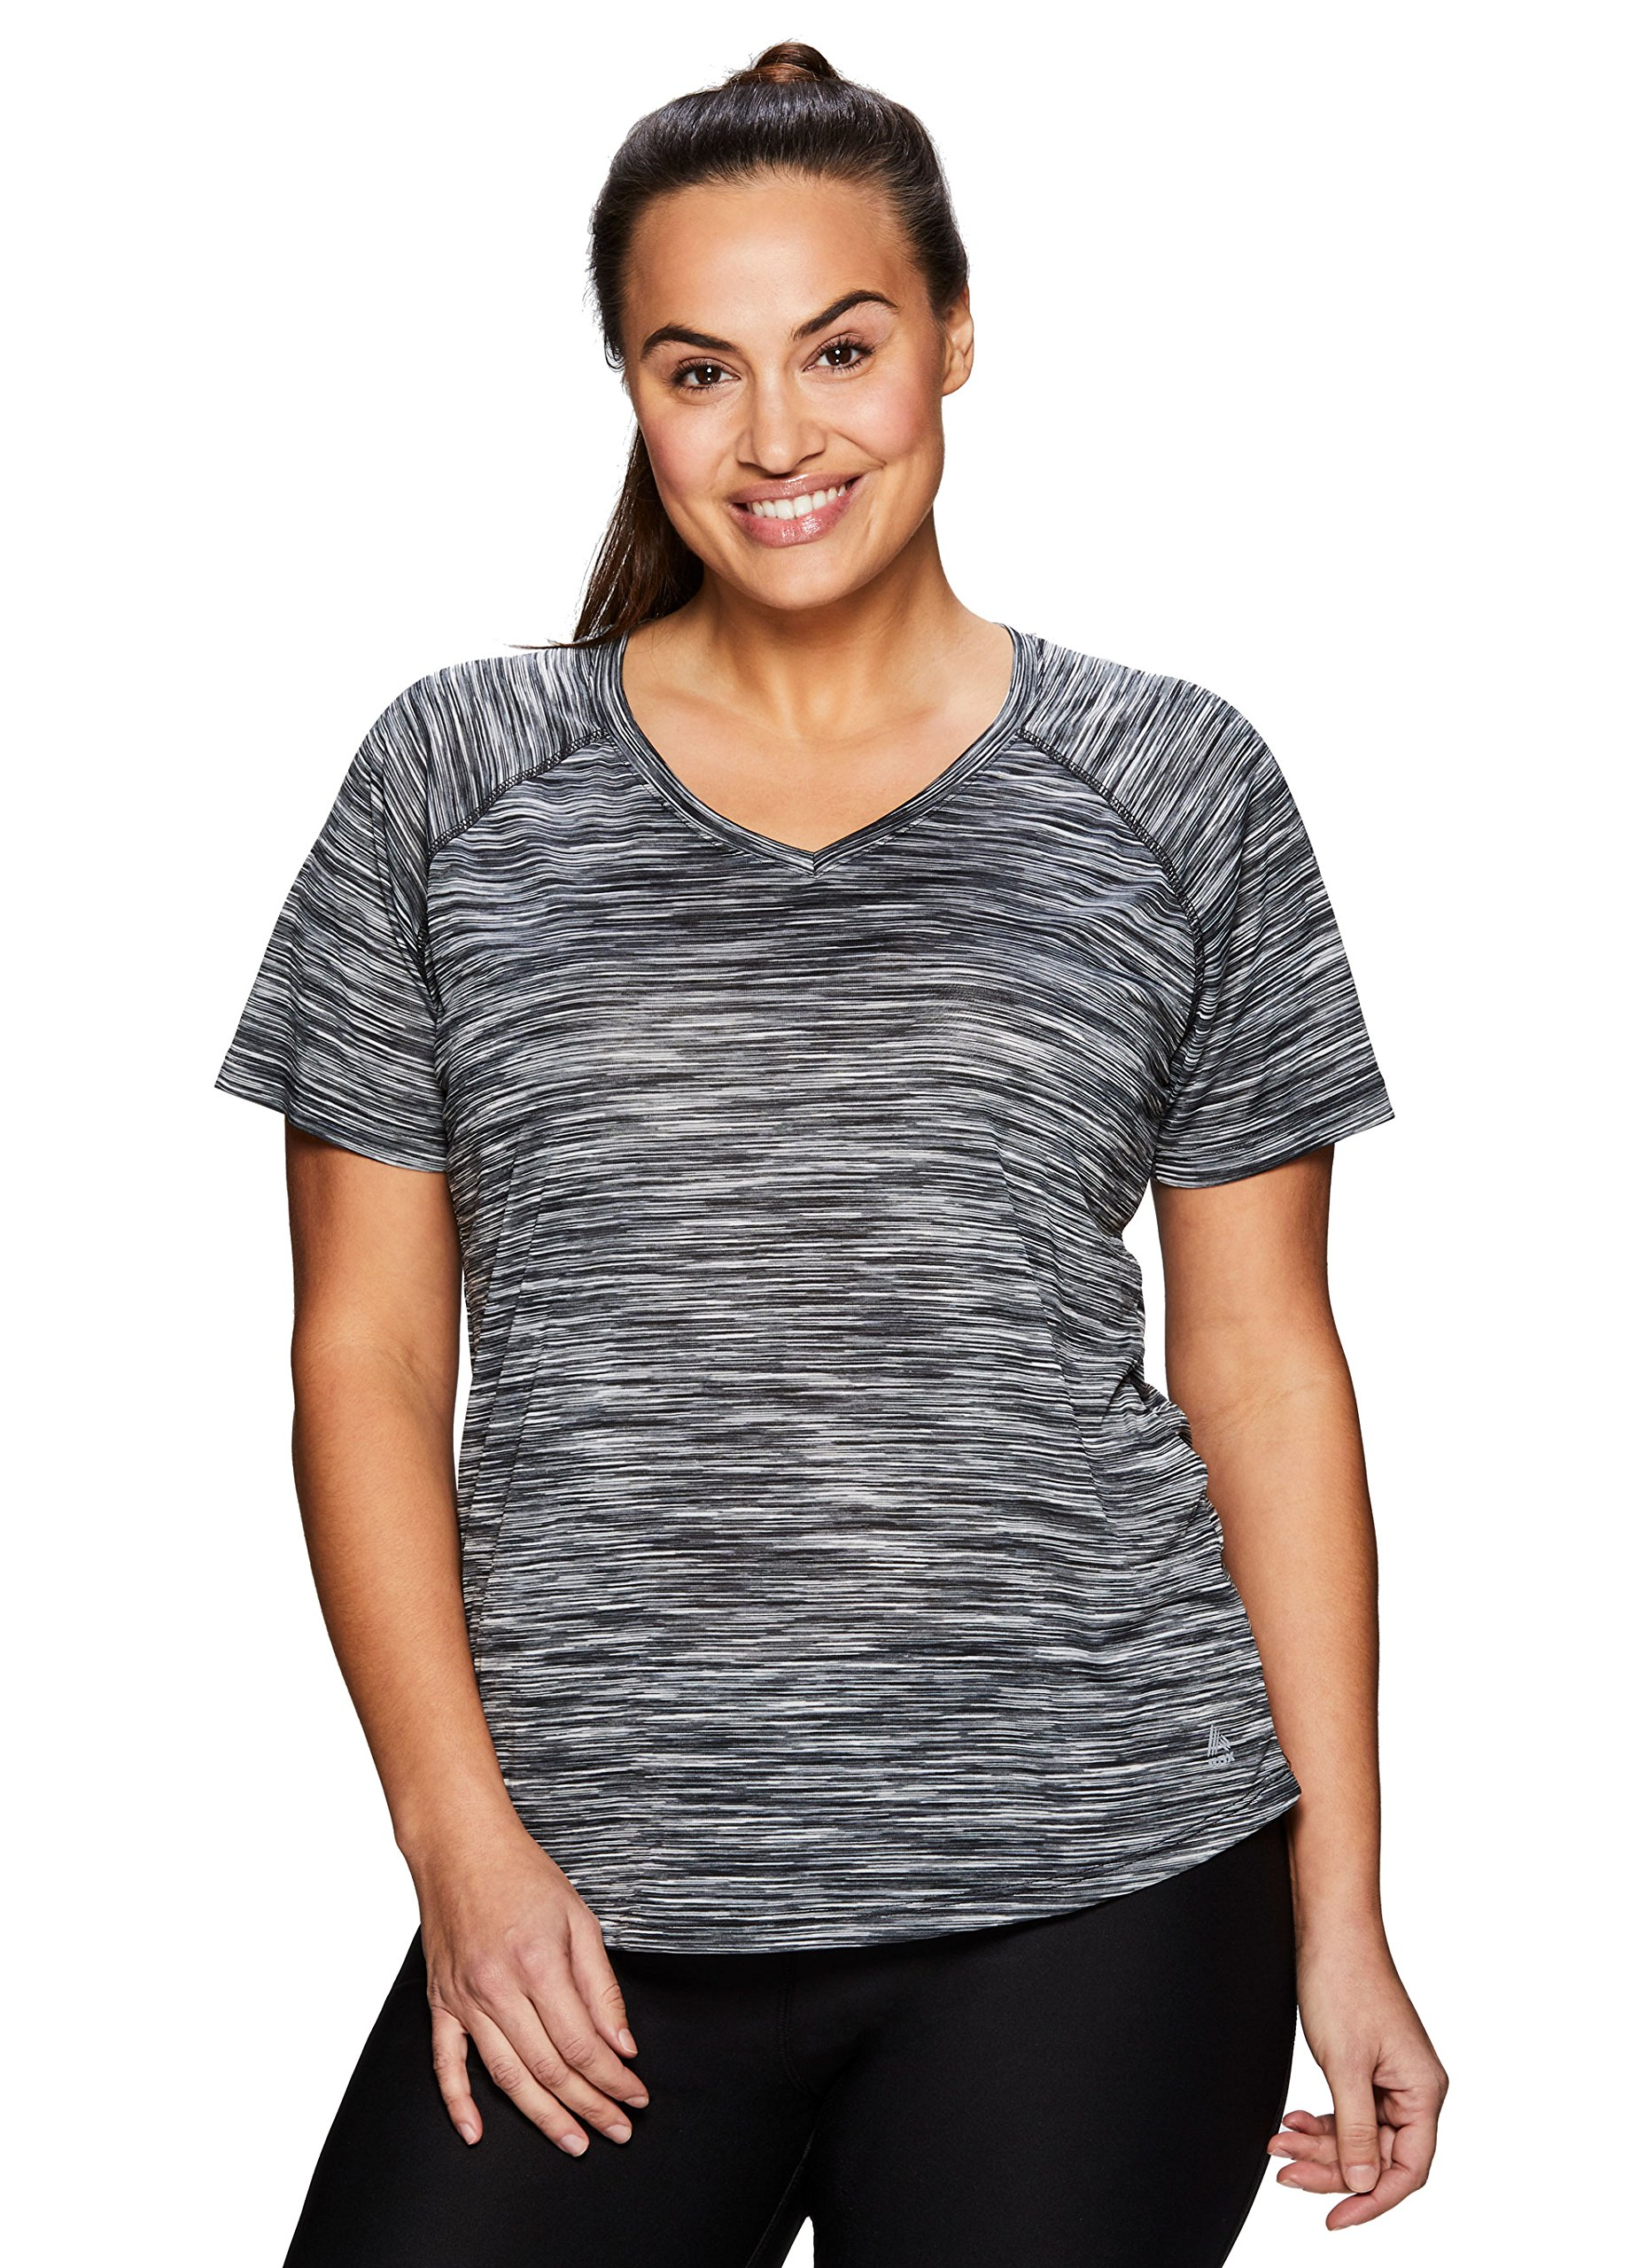 RBX Active Women's Plus Size Striated Short Sleeve Top Black 3X